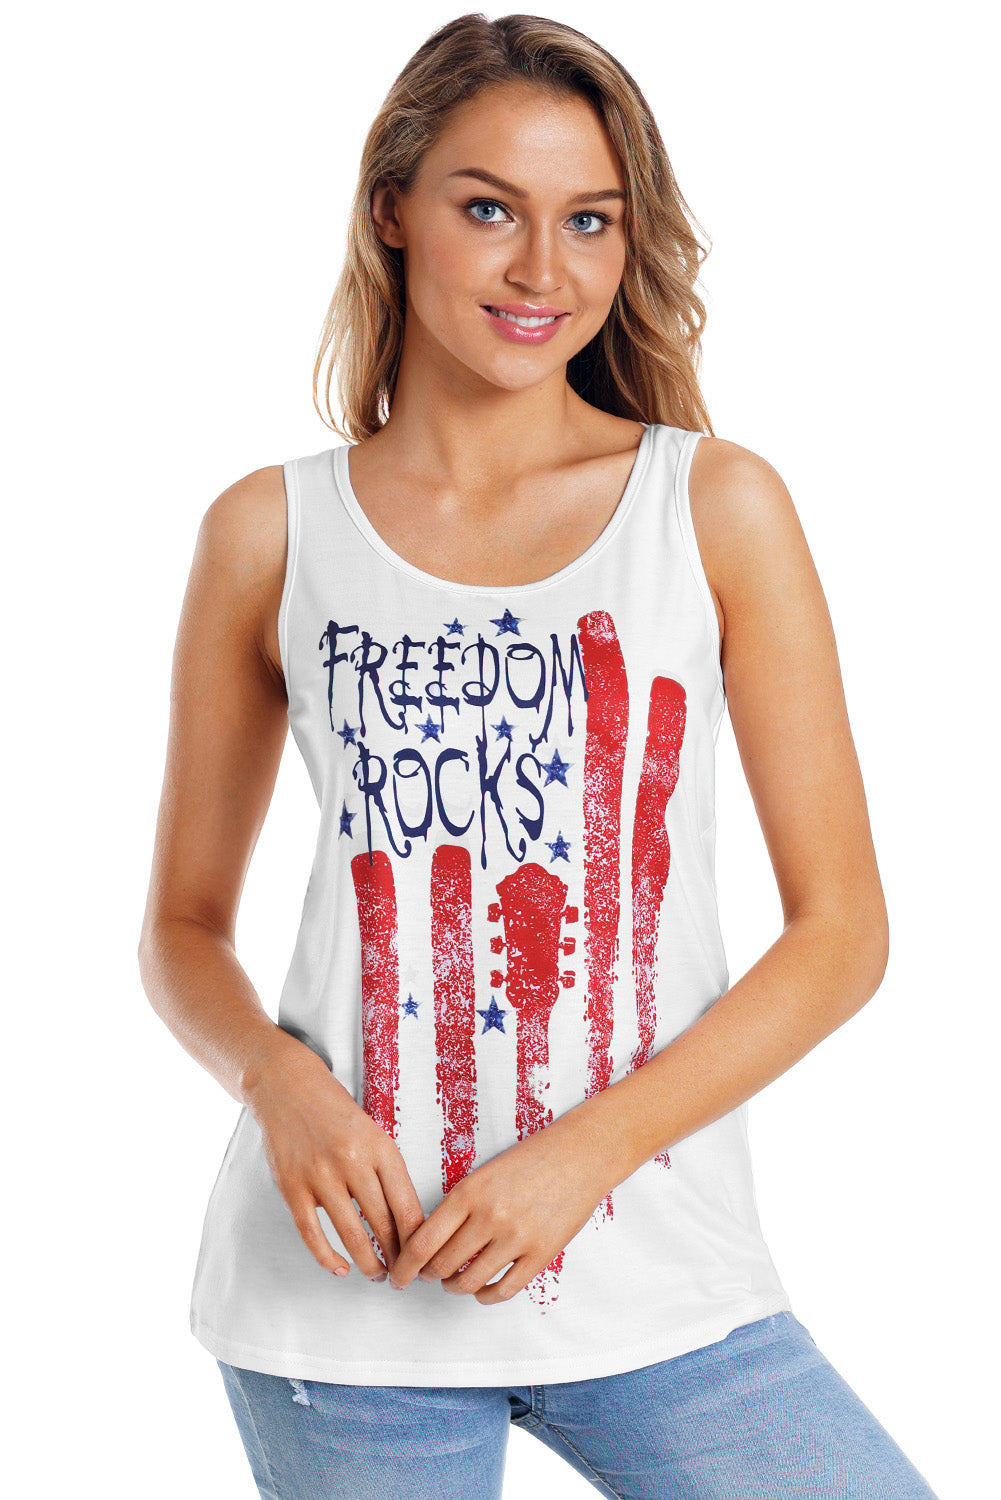 Freedom Rocks Flag Print White Active Tank Top